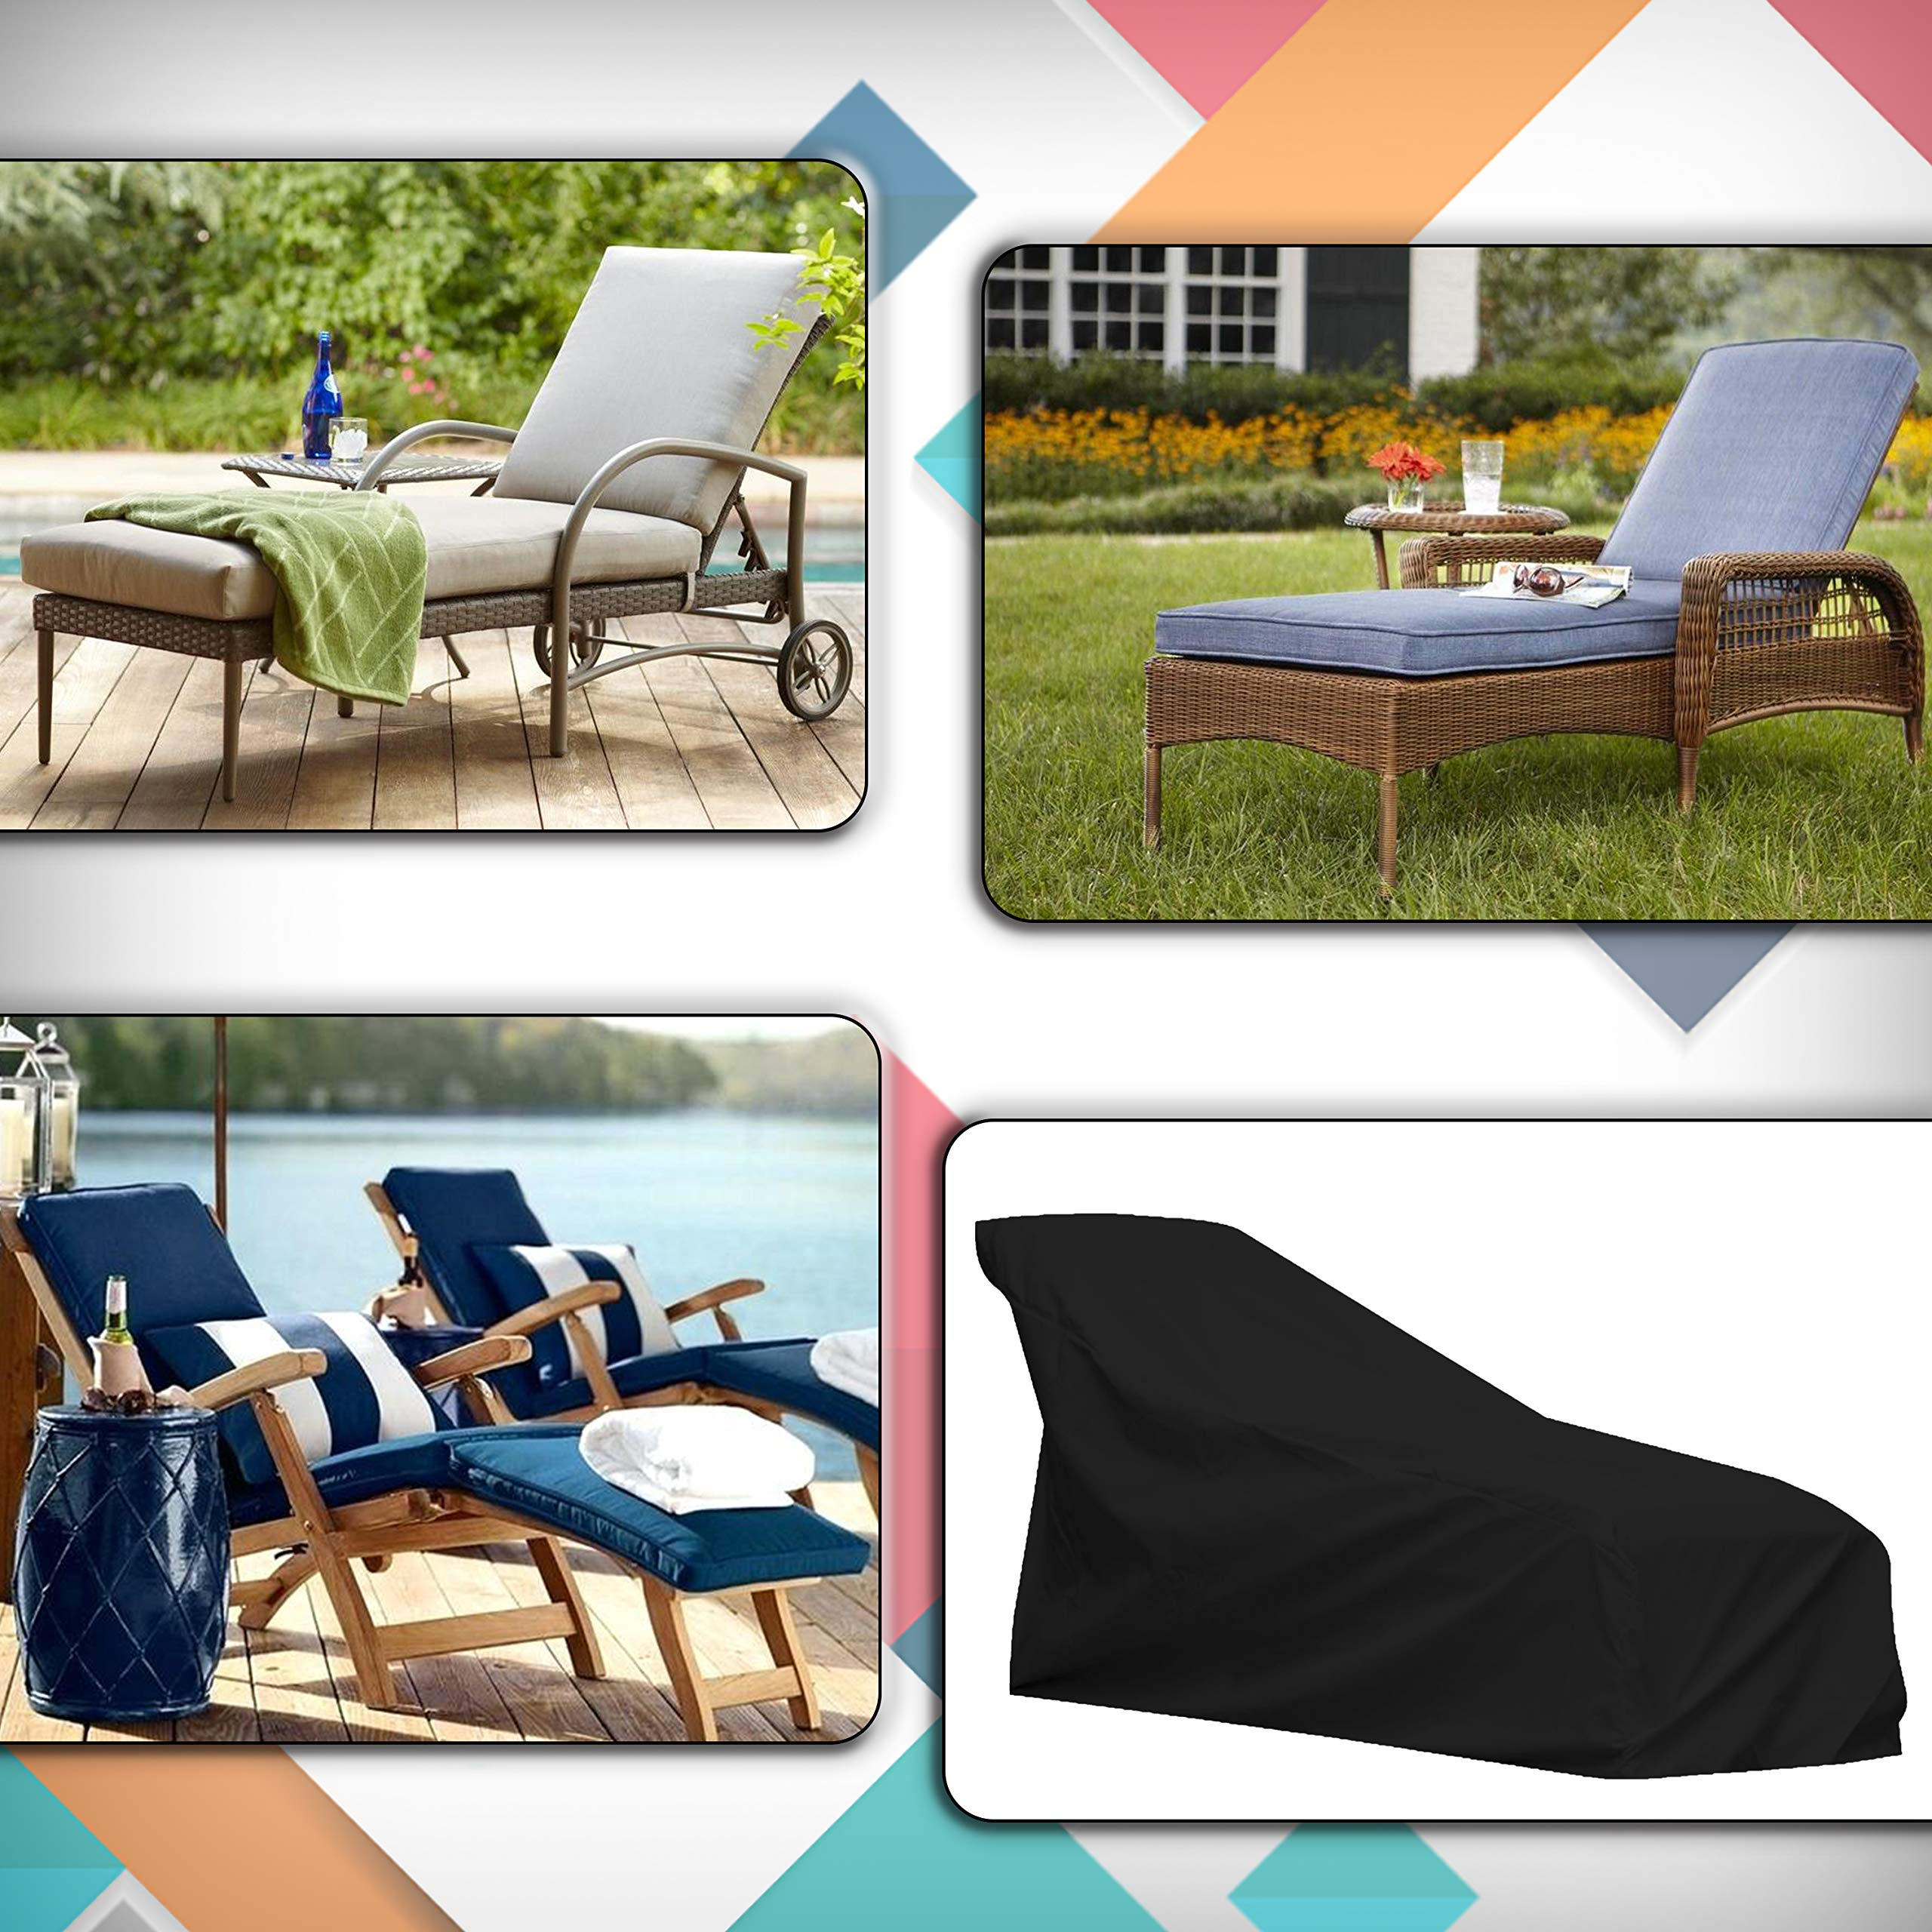 COVERS & ALL Chaise Lounge Cover 12 Oz Waterproof - 100% UV & Weather Resistant Outdoor Chaise Cover PVC Coated with Air Pockets and Drawstring for Snug Fit (86W x 36D x 32H, Black) by COVERS & ALL (Image #6)